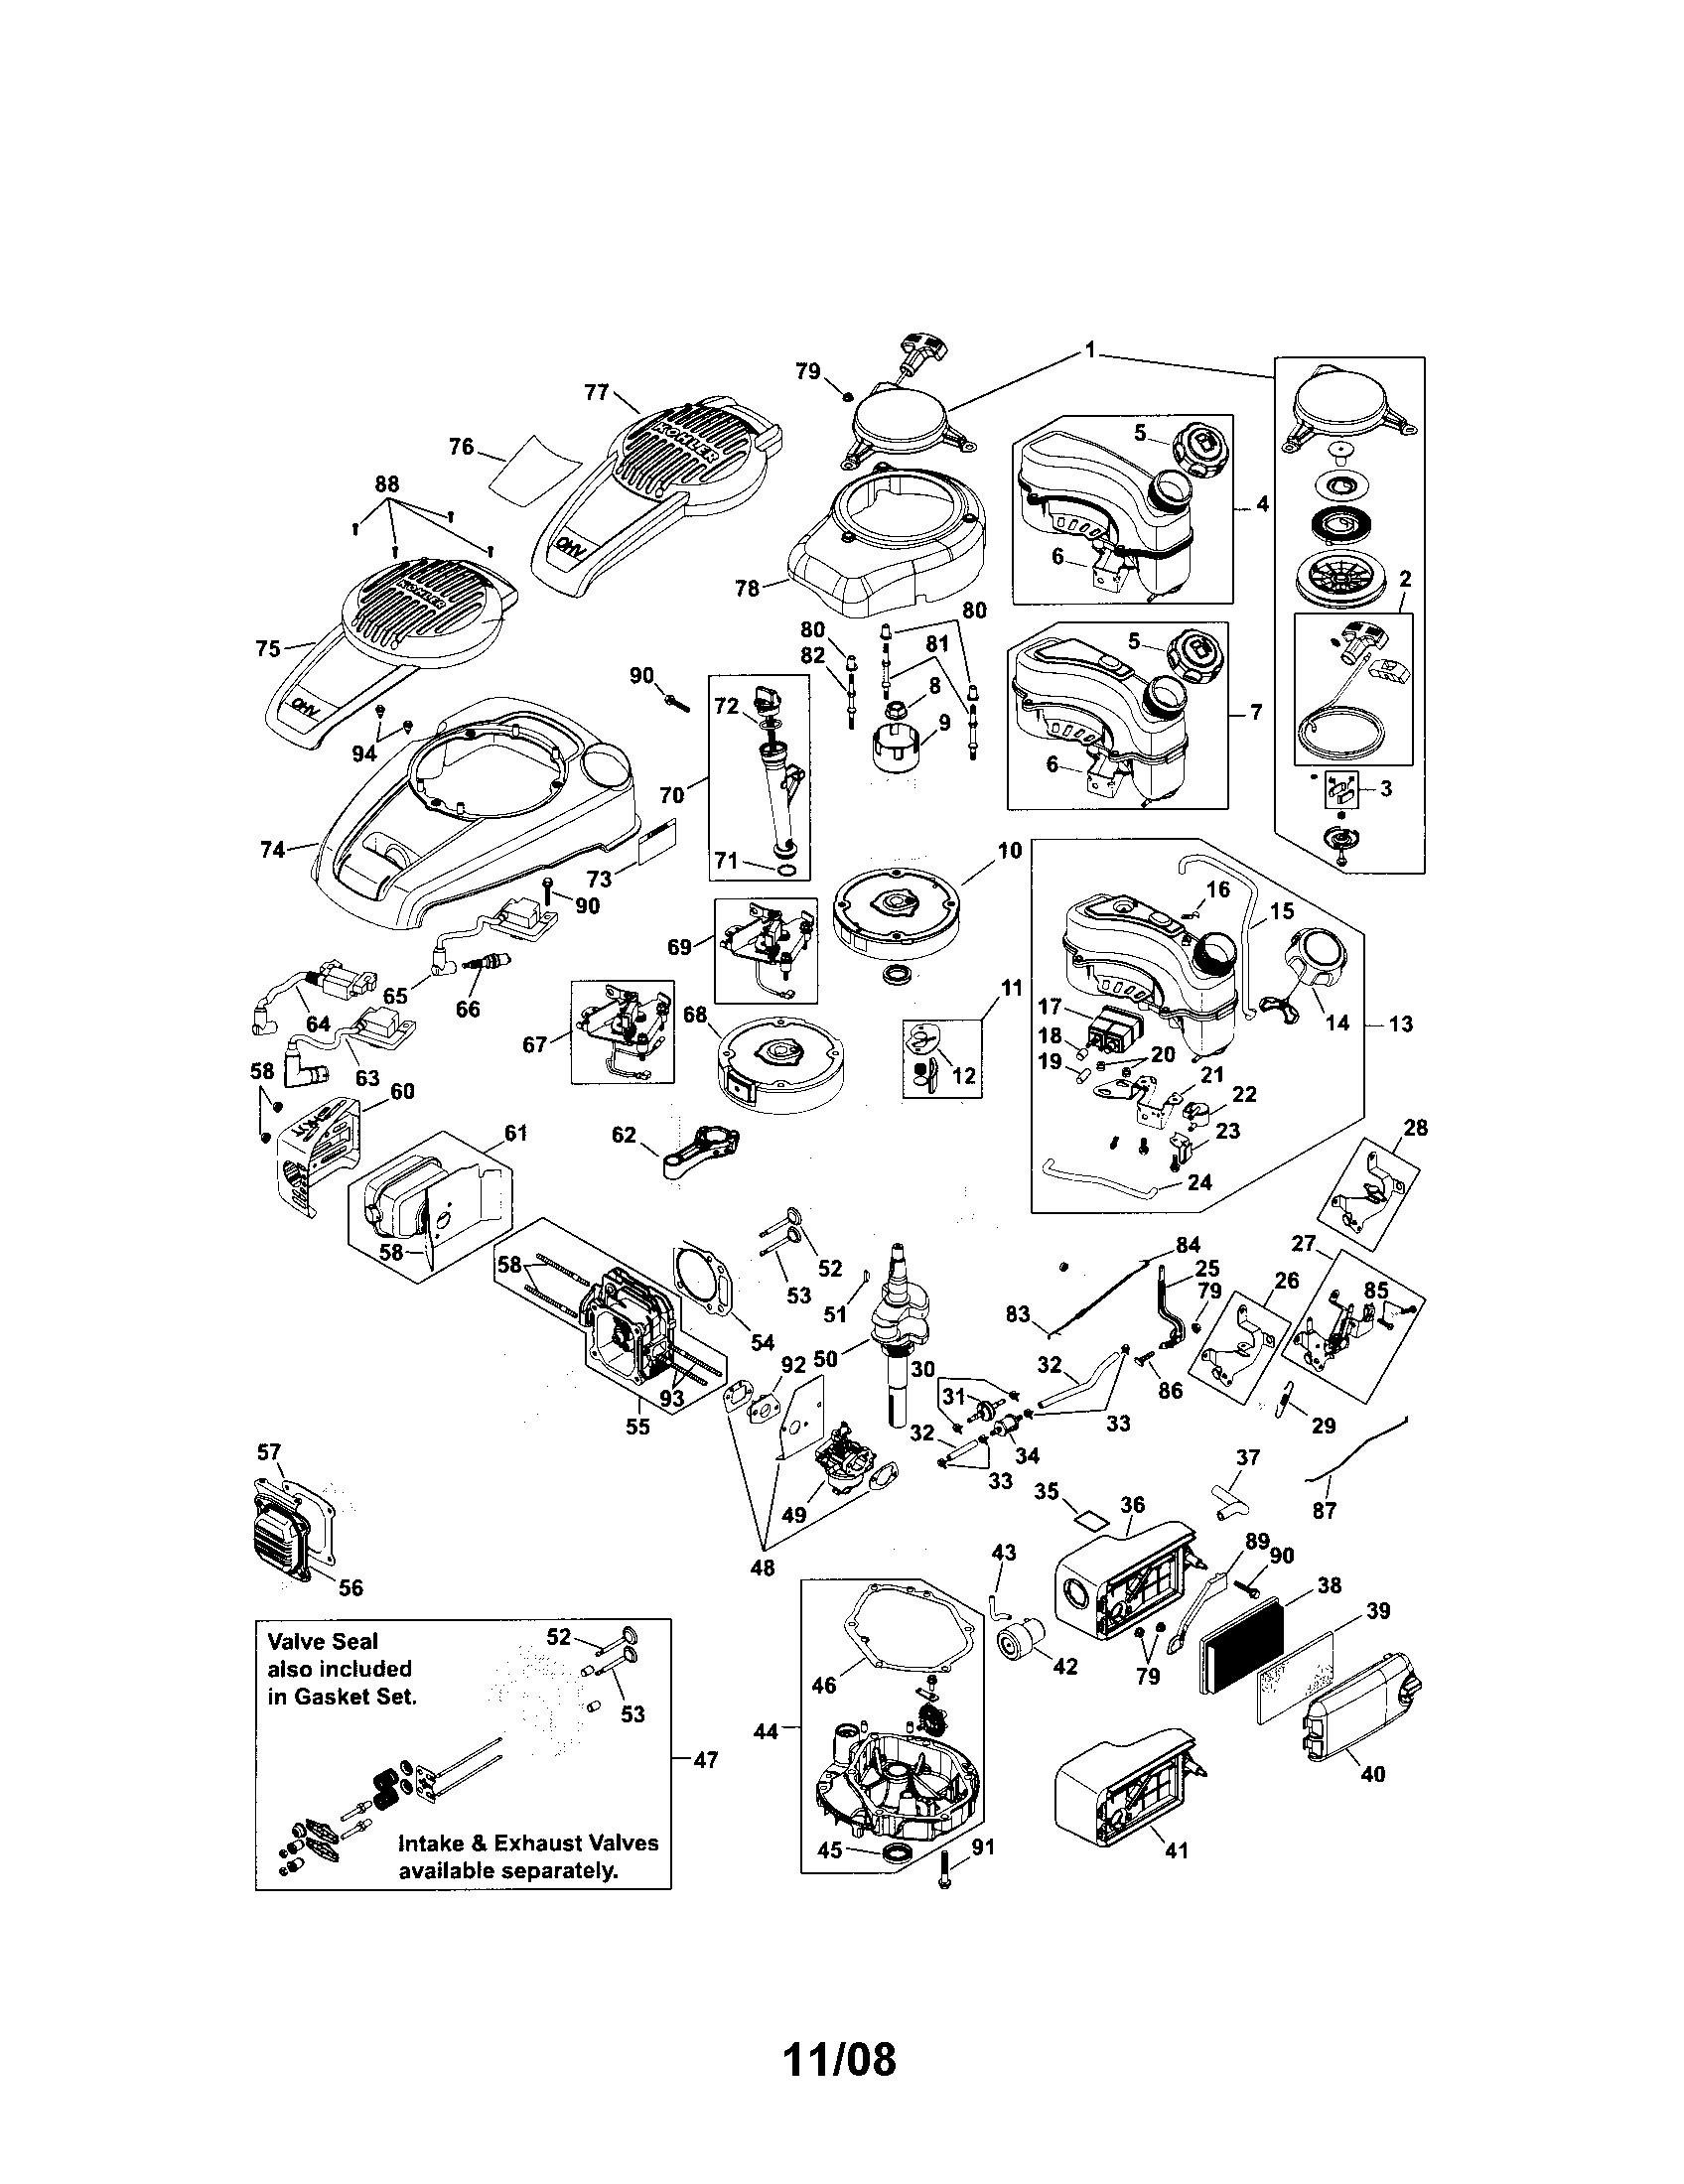 kohler engine schematics